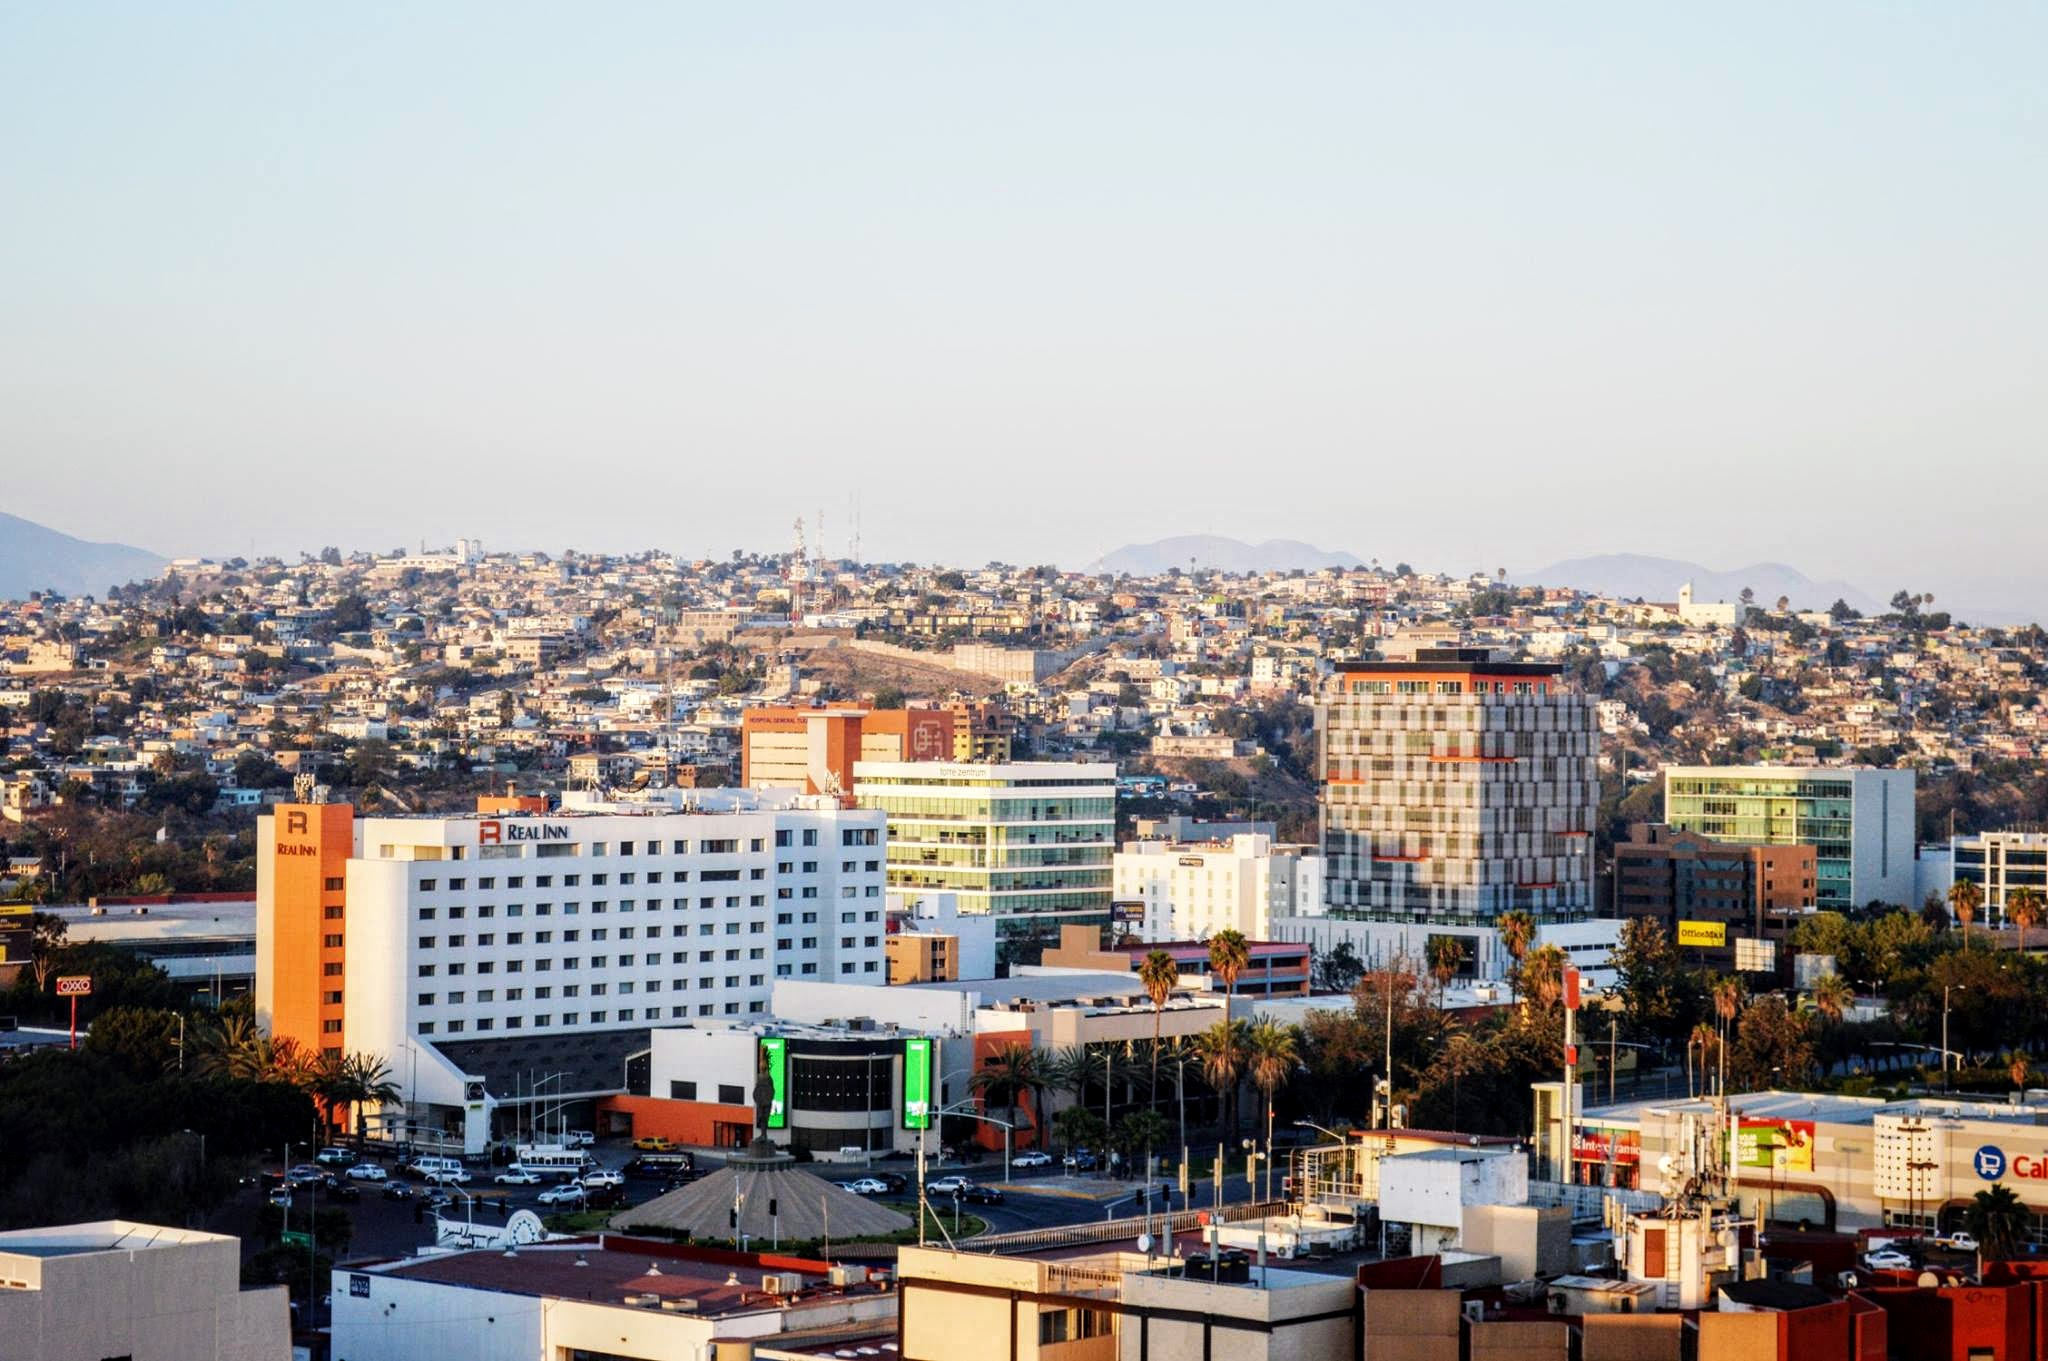 https://upload.wikimedia.org/wikipedia/commons/9/9e/Zona_Rio_Tijuana.jpg